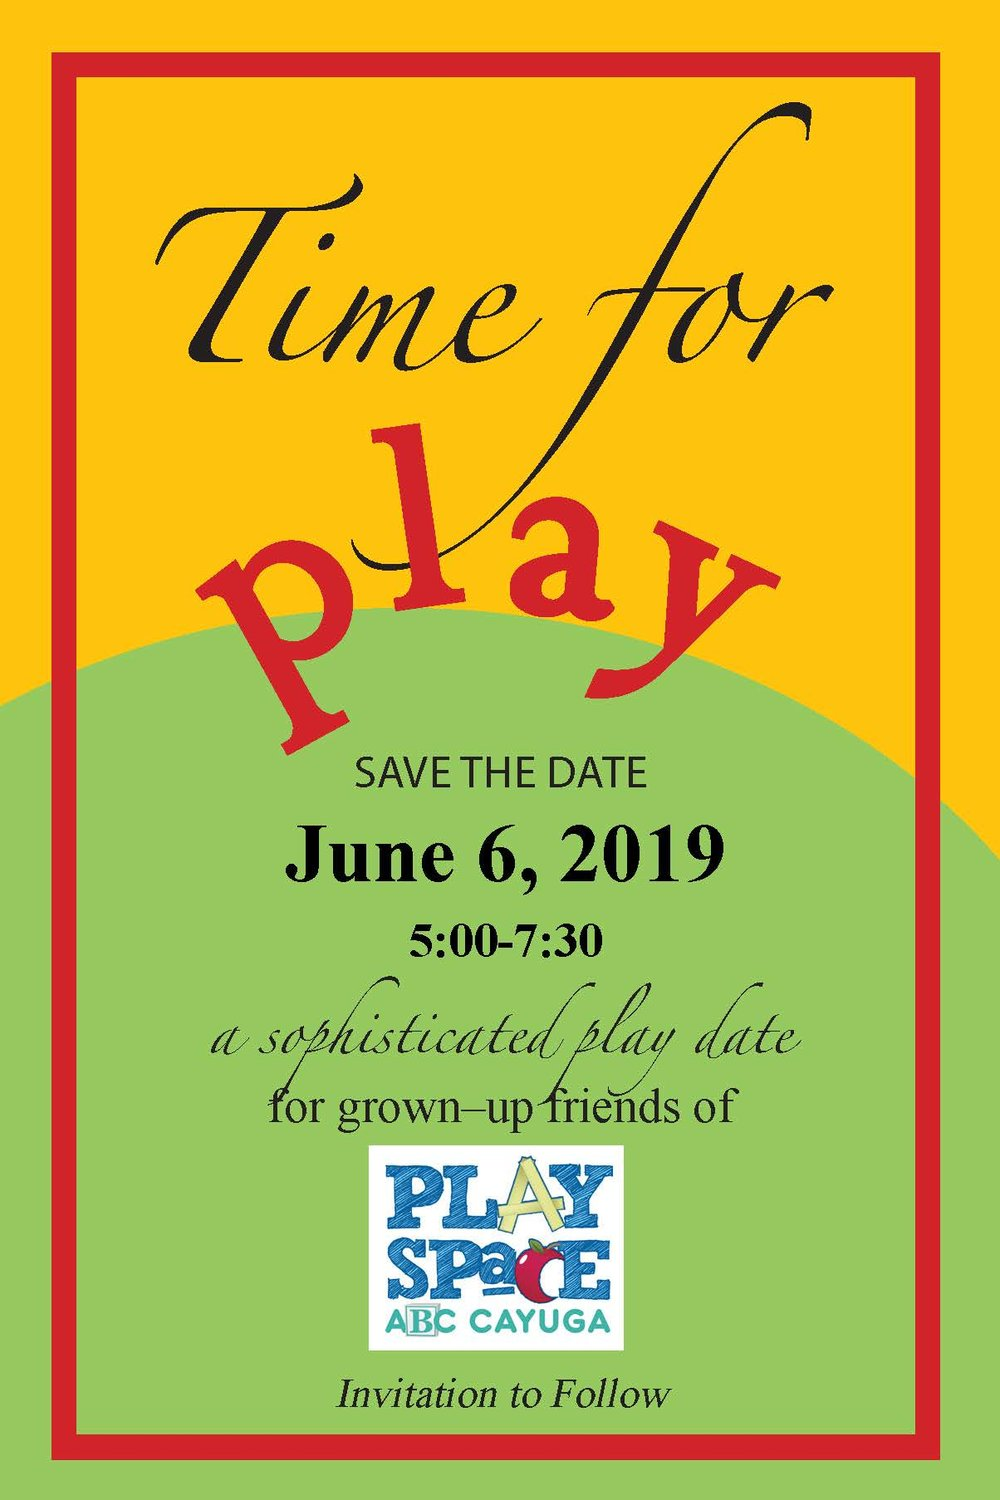 Save the Date-JUNE 6thTime for play - Enjoy some grown up time with grown up friends at the Play Space on June 6th from 5-7:30 PM. Yes its a FUNraiser! We had such a great time last year we wanted to do it all over again this year. We are working on some creative raffle experiences, tasty finger foods, craft beer and wine.  Save the date and look for more information soon.It's a Night in the Play Space! Proceeds support affordable play for all with inspiring programs and activities for all.Invitations to followIf you or your organization is interested in becoming a sponsor for this event please call Nancy or Elizabeth at 315-252-5541. THANK YOU